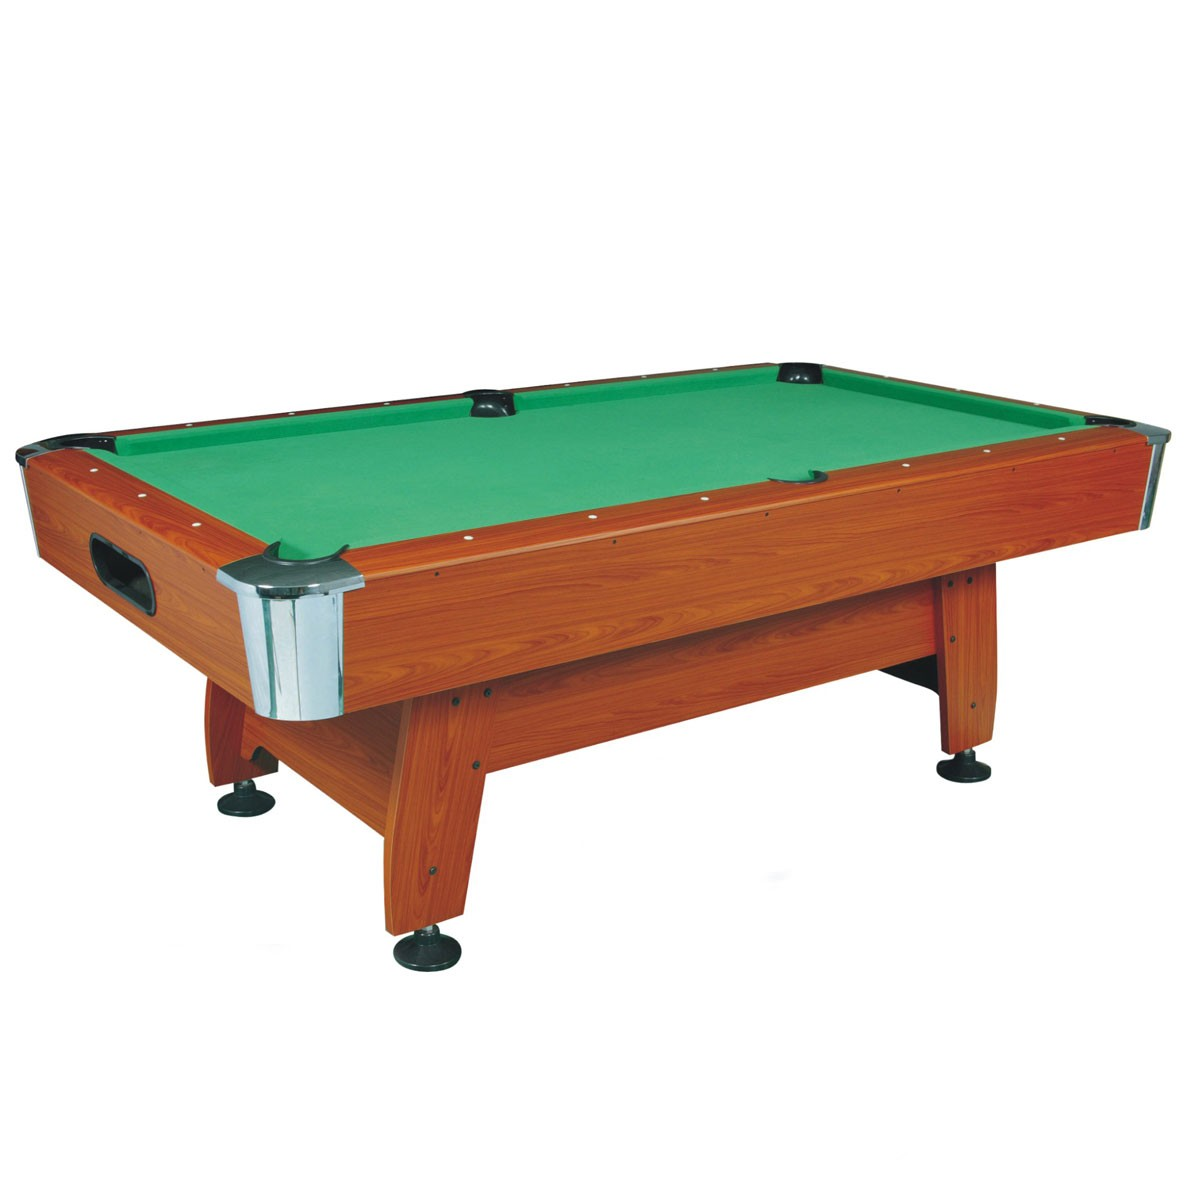 8-Foot Pool Table with Accessories (ZLB-P01)